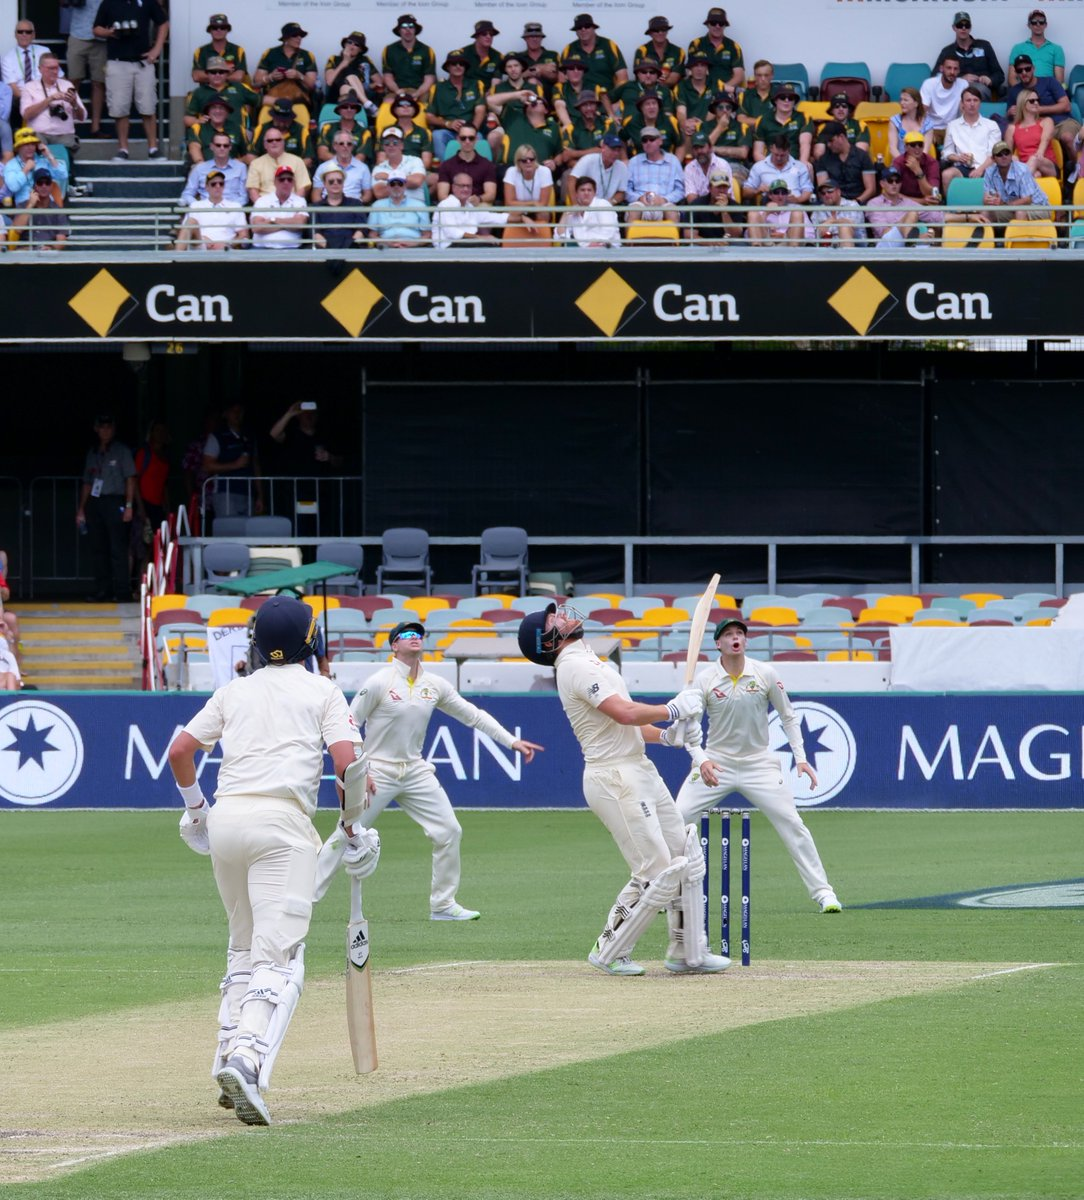 Ashes 2017/18: Can't Wait To Bowl On A Fast Wicket Against These Guys, Says Mitchell Starc After England's Lower-Order Collapse 1